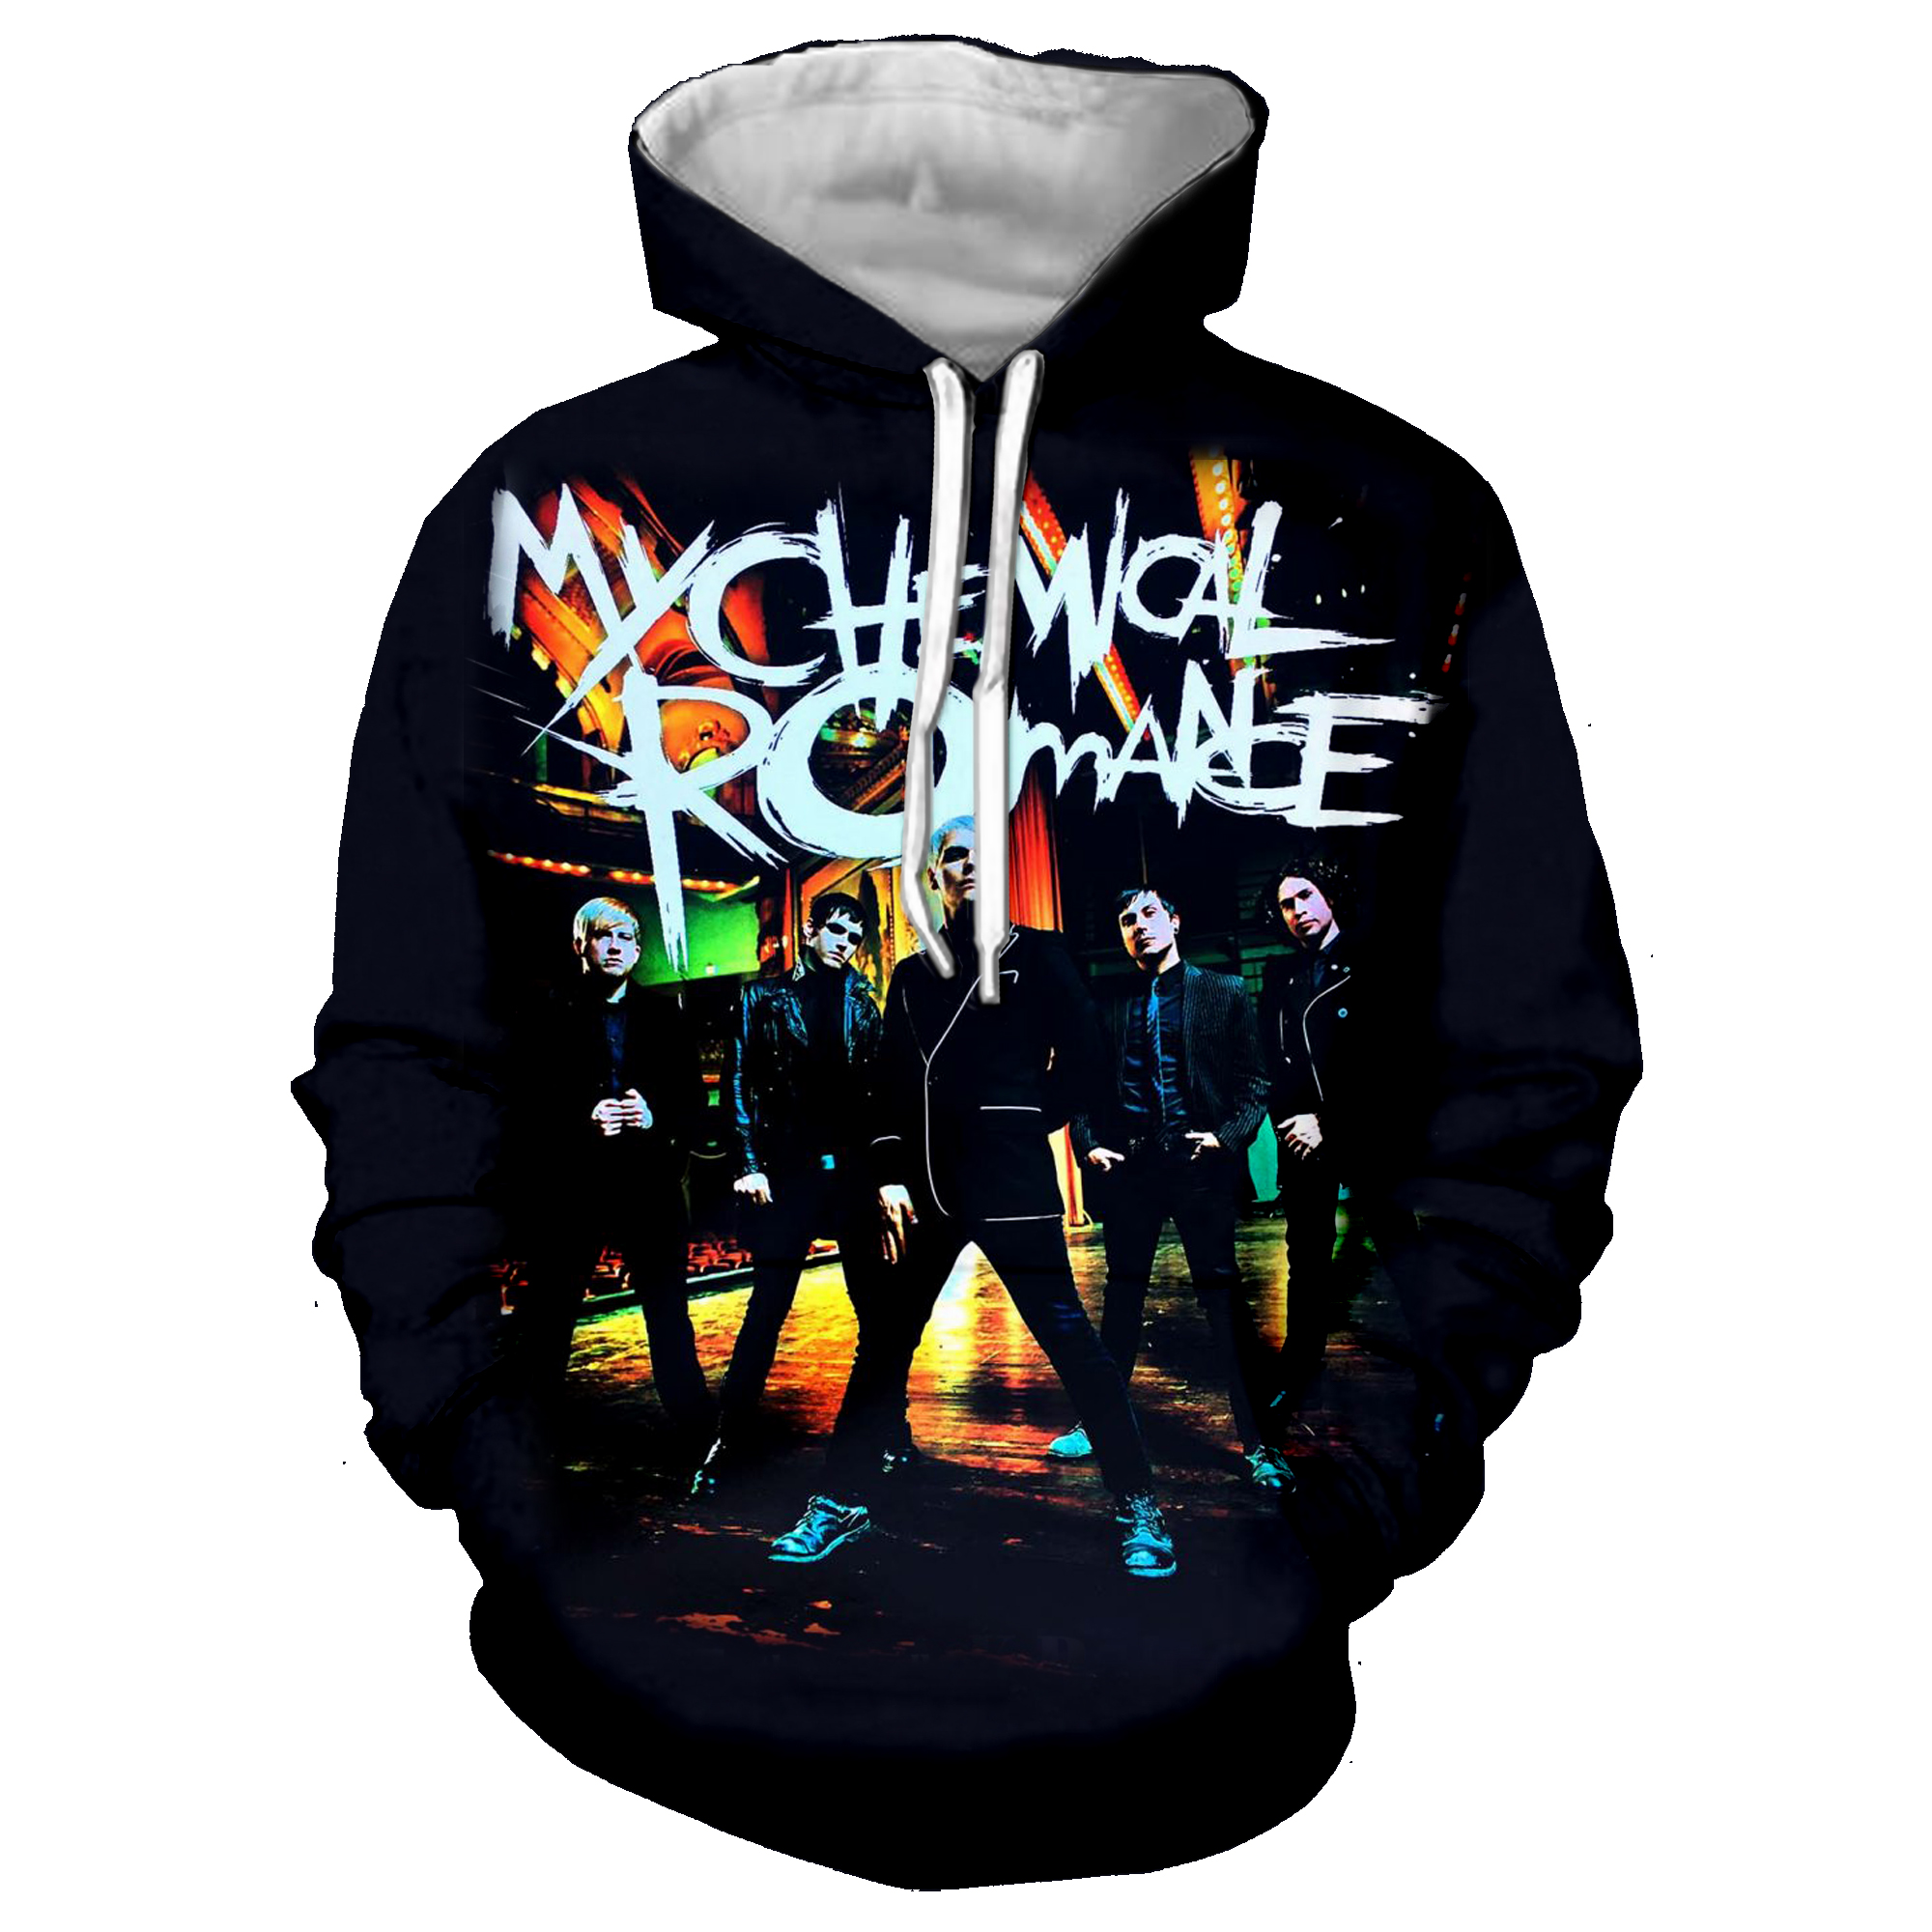 Pop Punk Rock My Chemical Romance 3D Print Jacket Women/men Streetwear Sweatshirt Men's Hoodies Man Outfits sudadera <font><b>hombre</b></font> <font><b>6XL</b></font> image